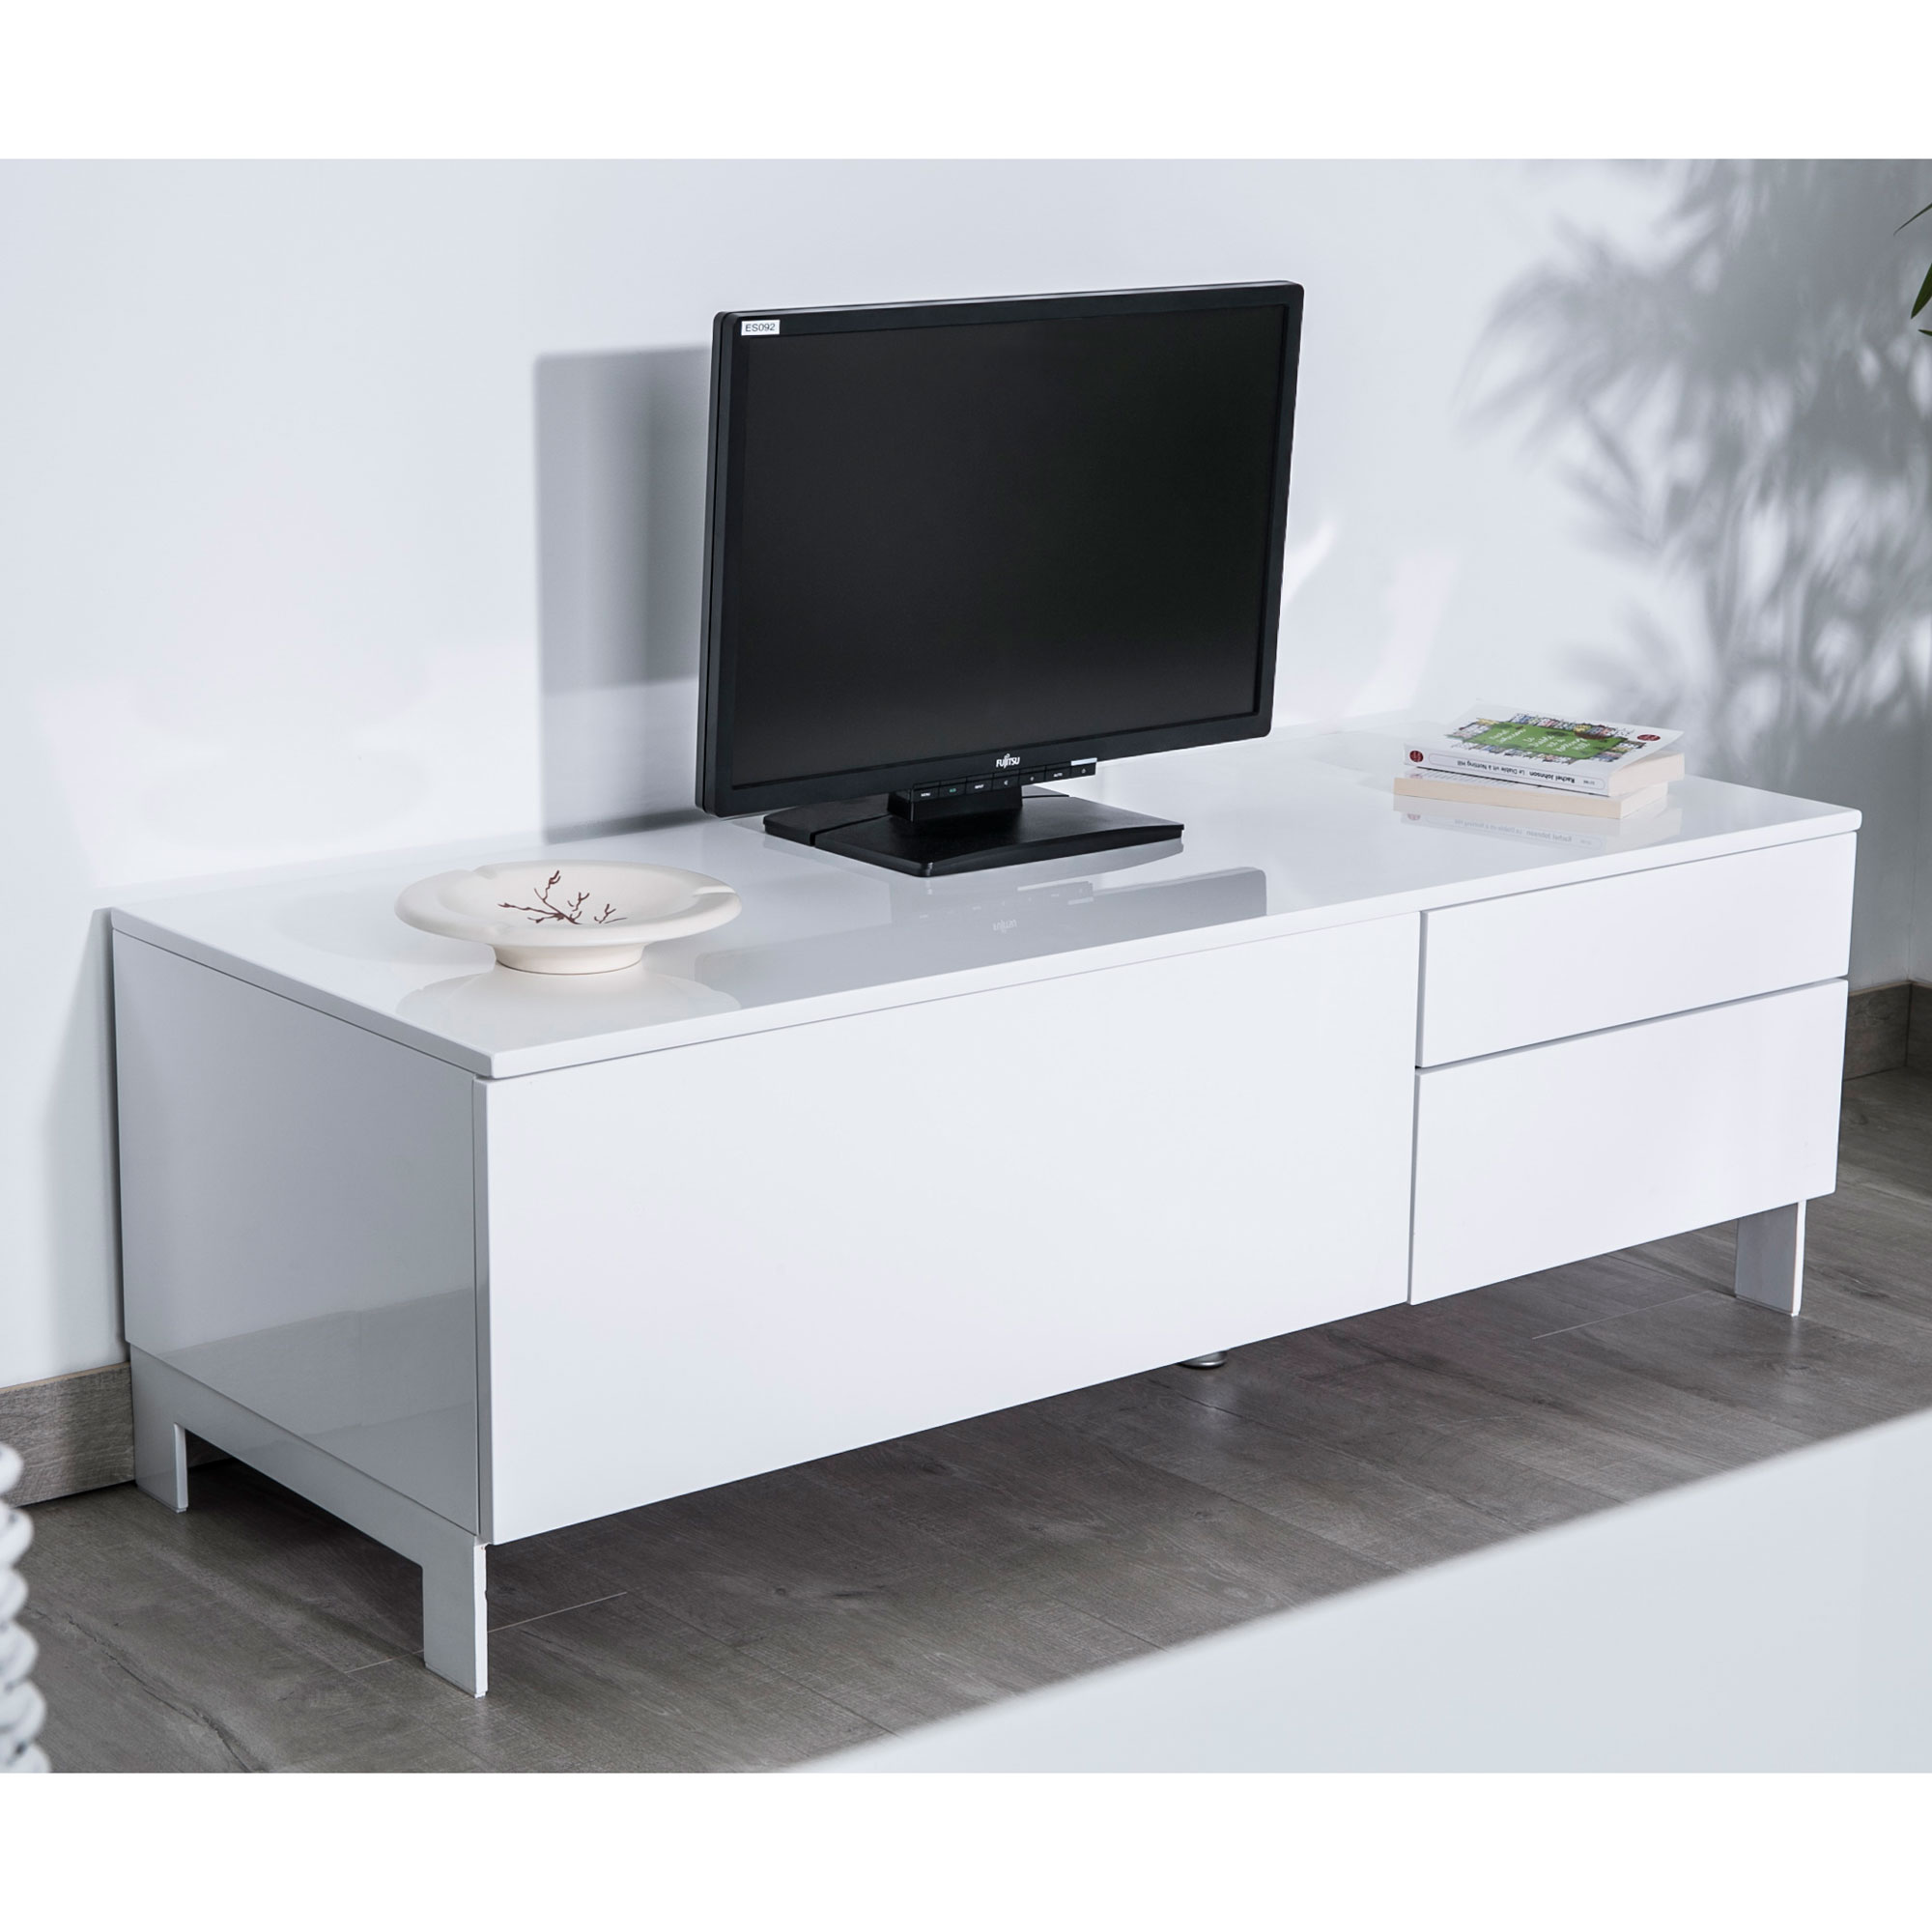 meuble tv bois et blanc laqu id es de d coration int rieure french decor. Black Bedroom Furniture Sets. Home Design Ideas